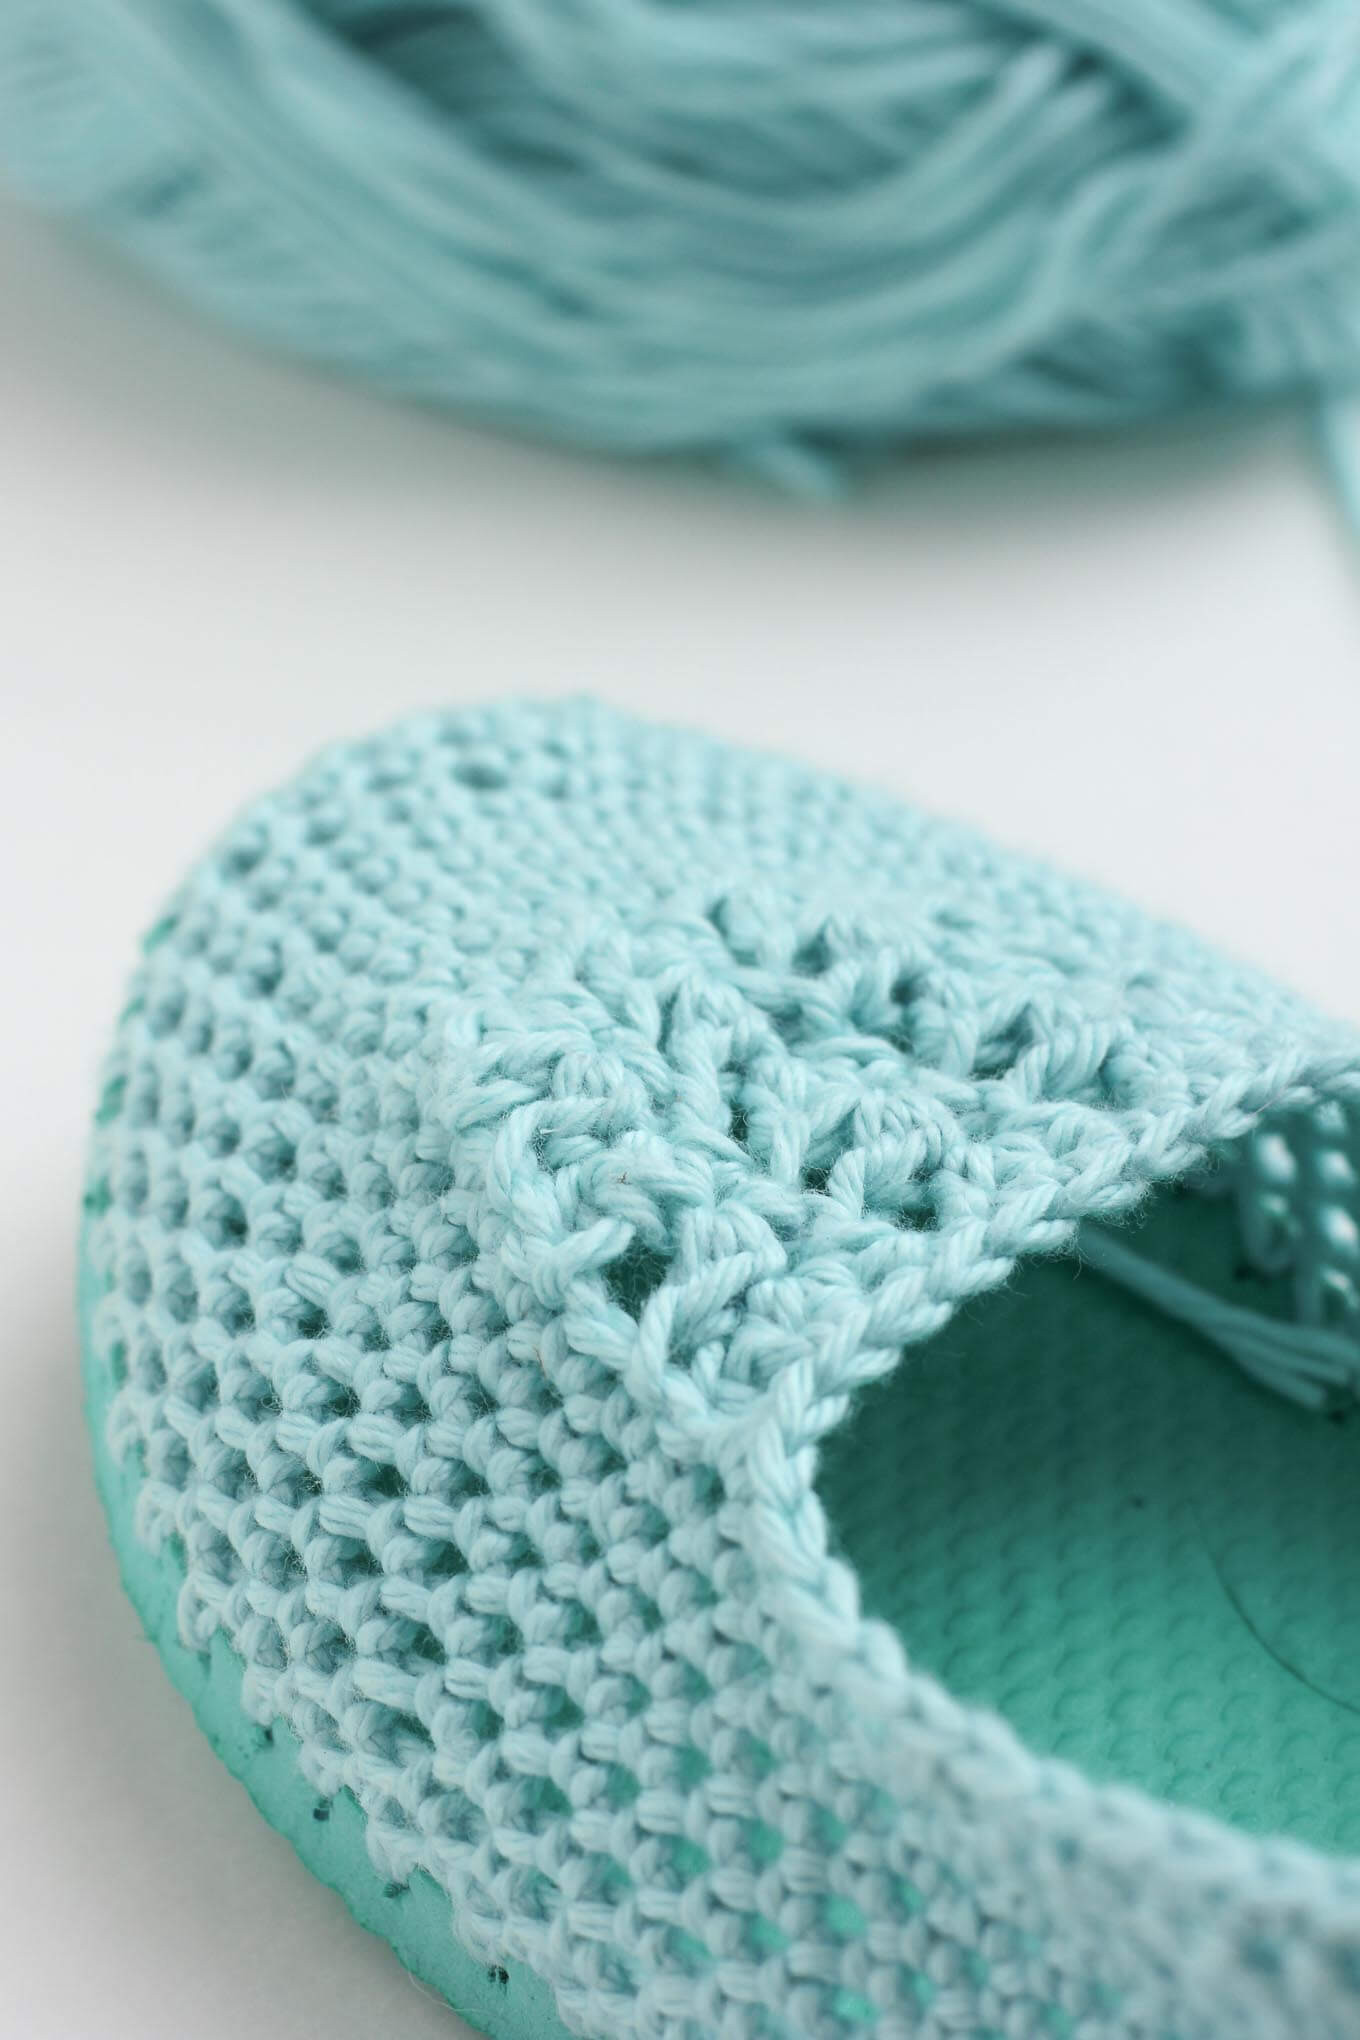 Crochet Flip Flop Slippers Awesome Free Crochet Slippers Pattern with Flip Flop soles Of Amazing 49 Models Crochet Flip Flop Slippers